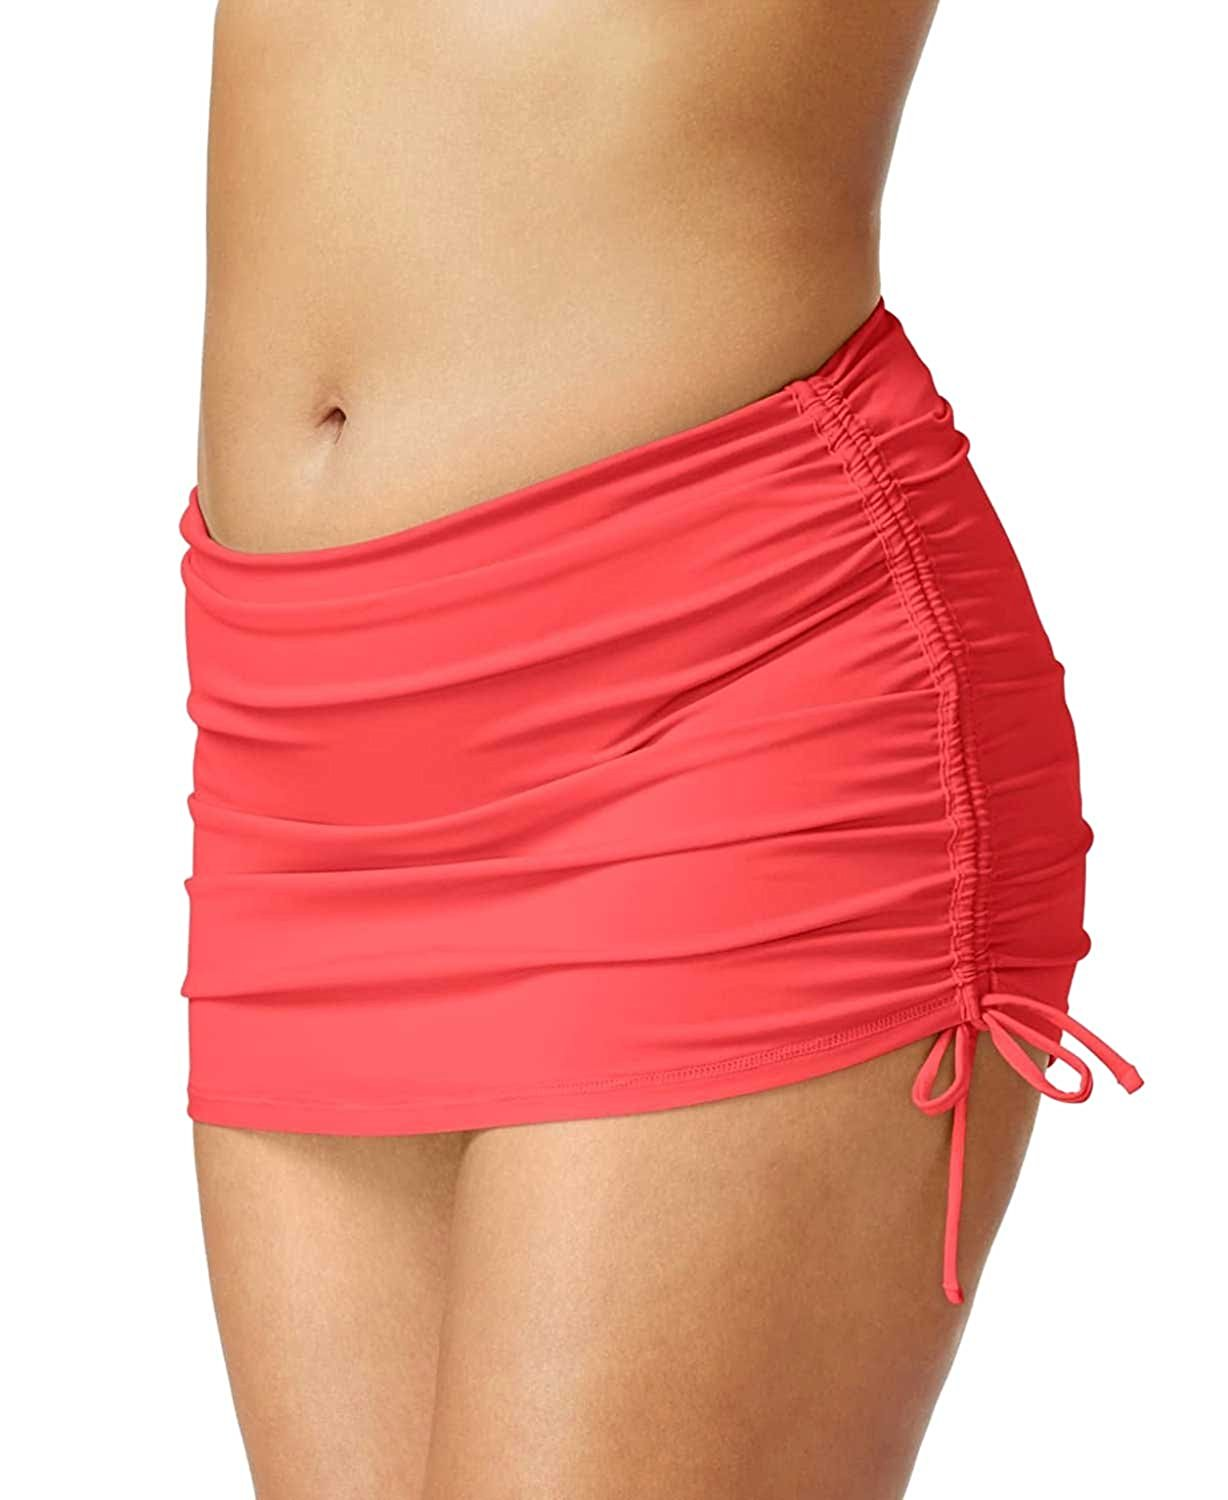 fba74c31ae Get Quotations · Island Escape Plus Size Side-Tie Swim Skirt Womens Swimsuit,  Coral, Size 16W